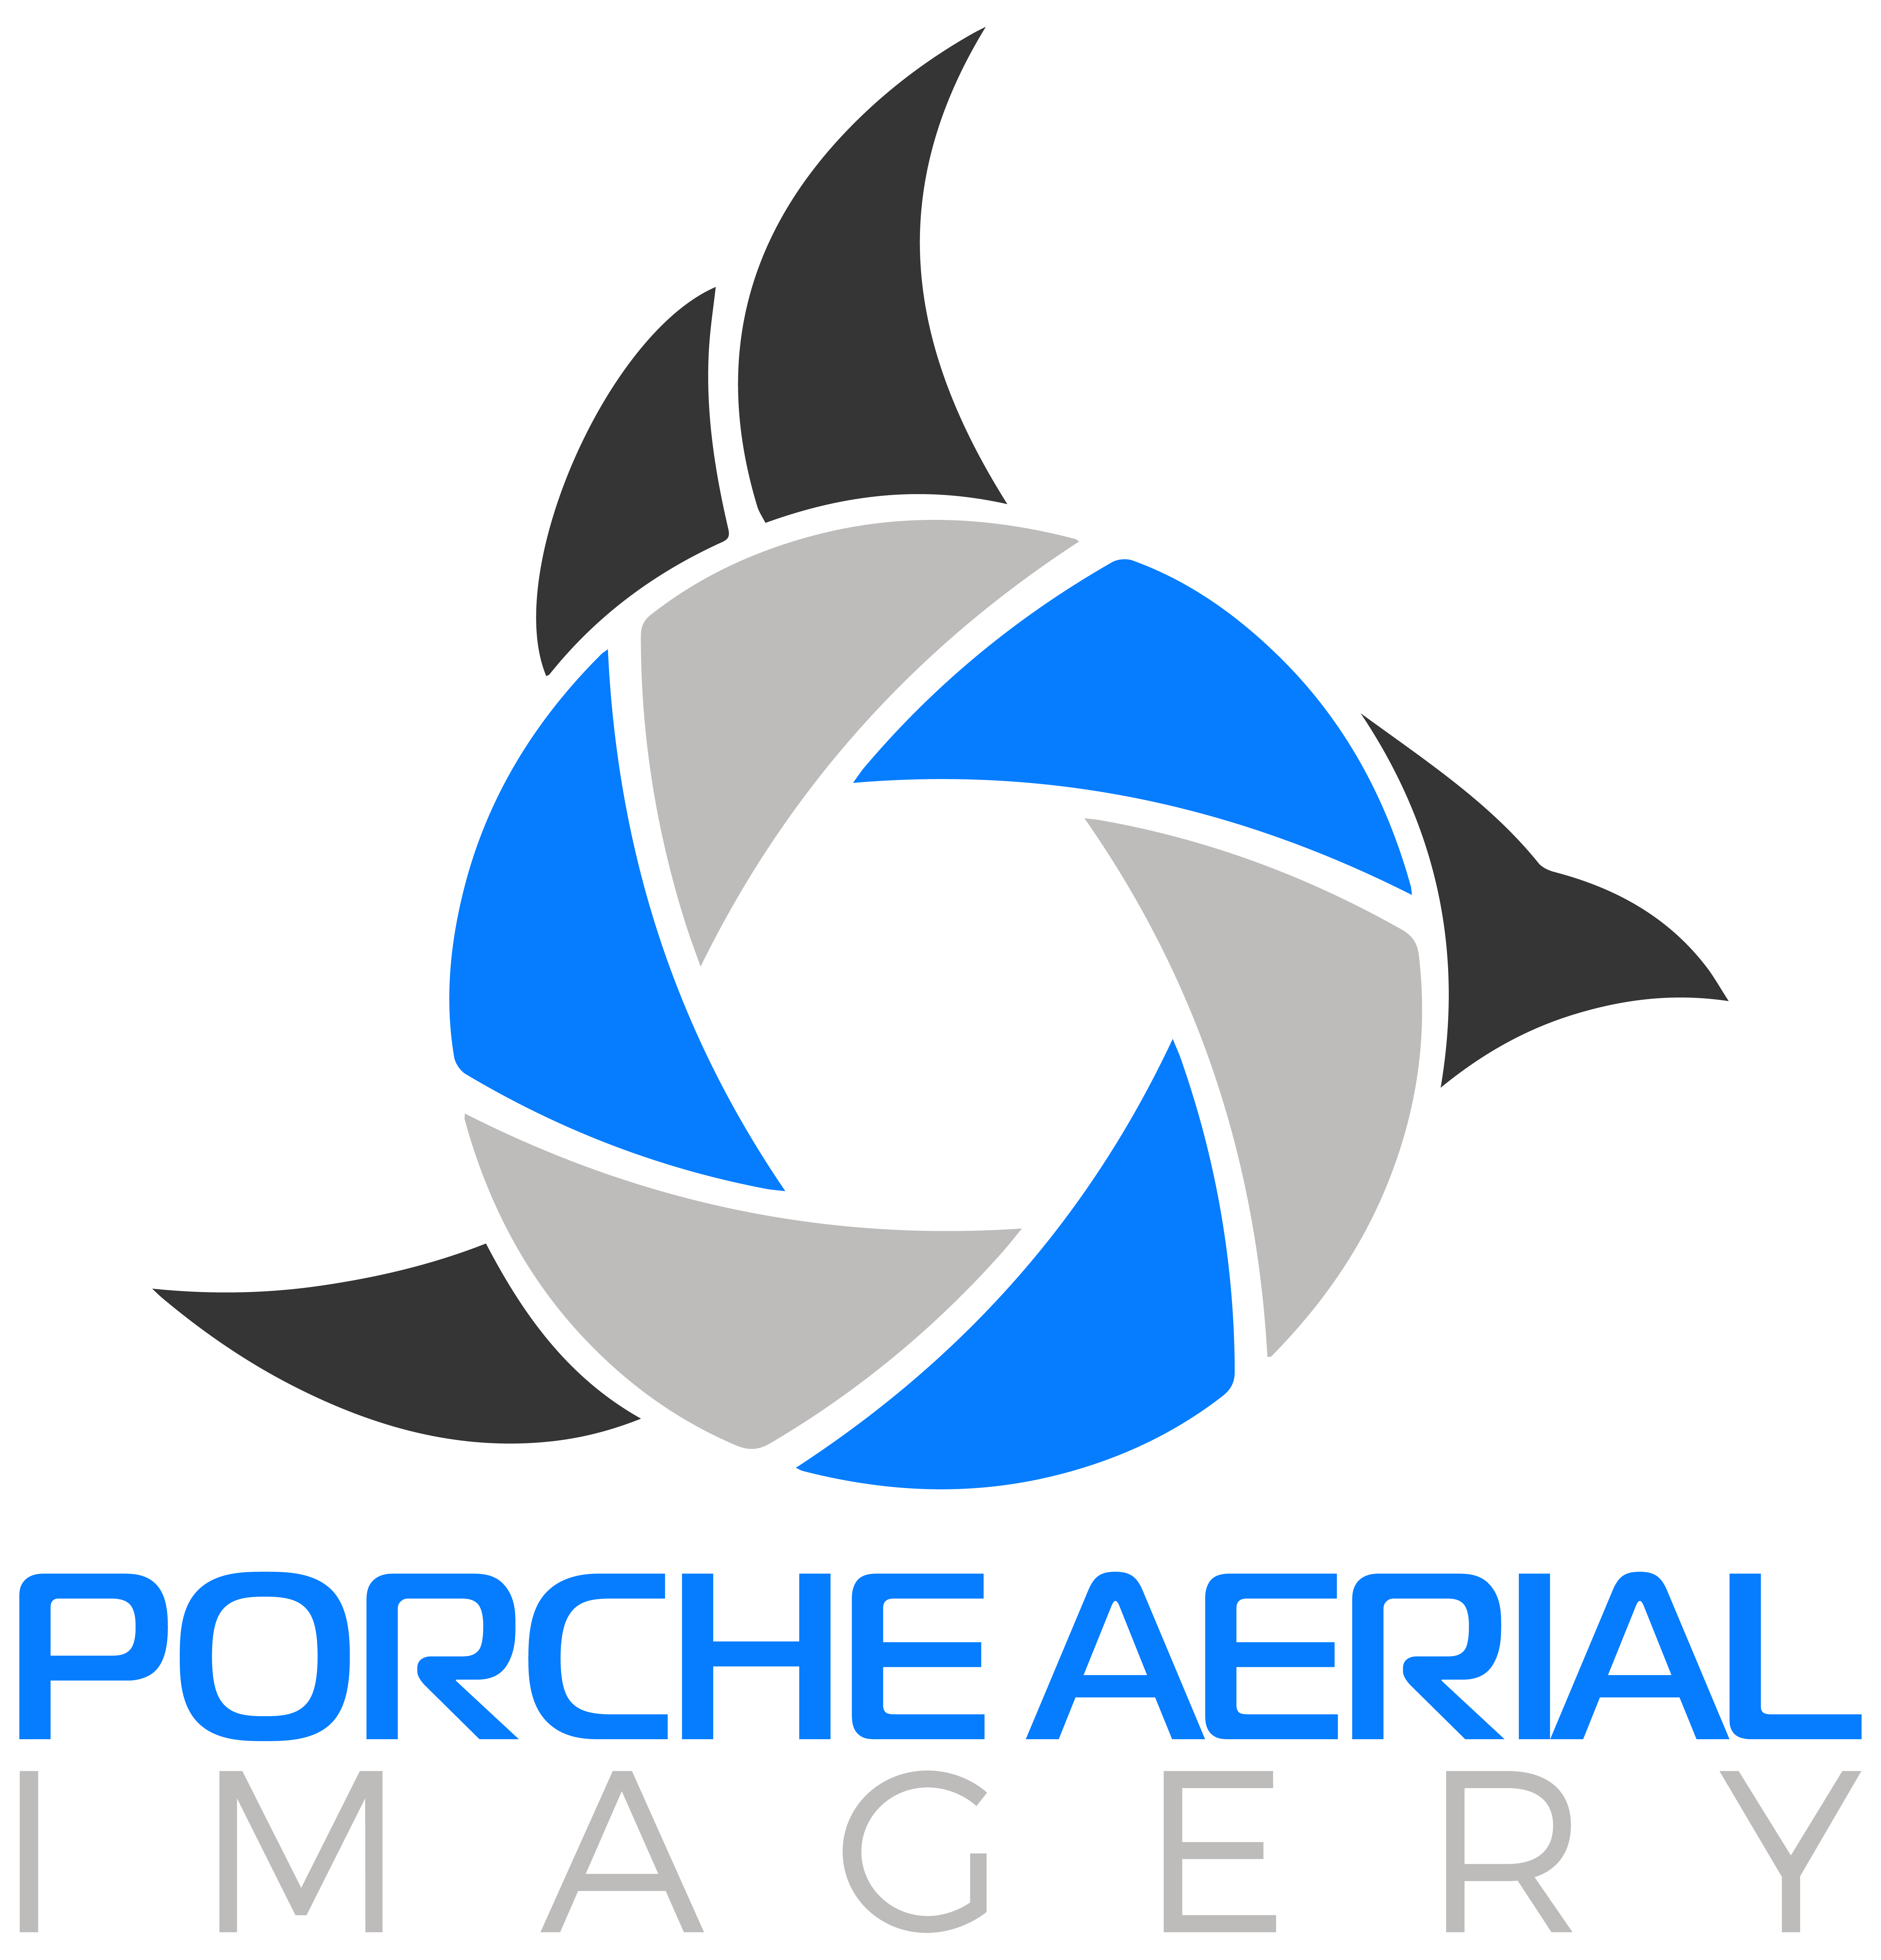 PORCHEAI LOGO DESIGN 01